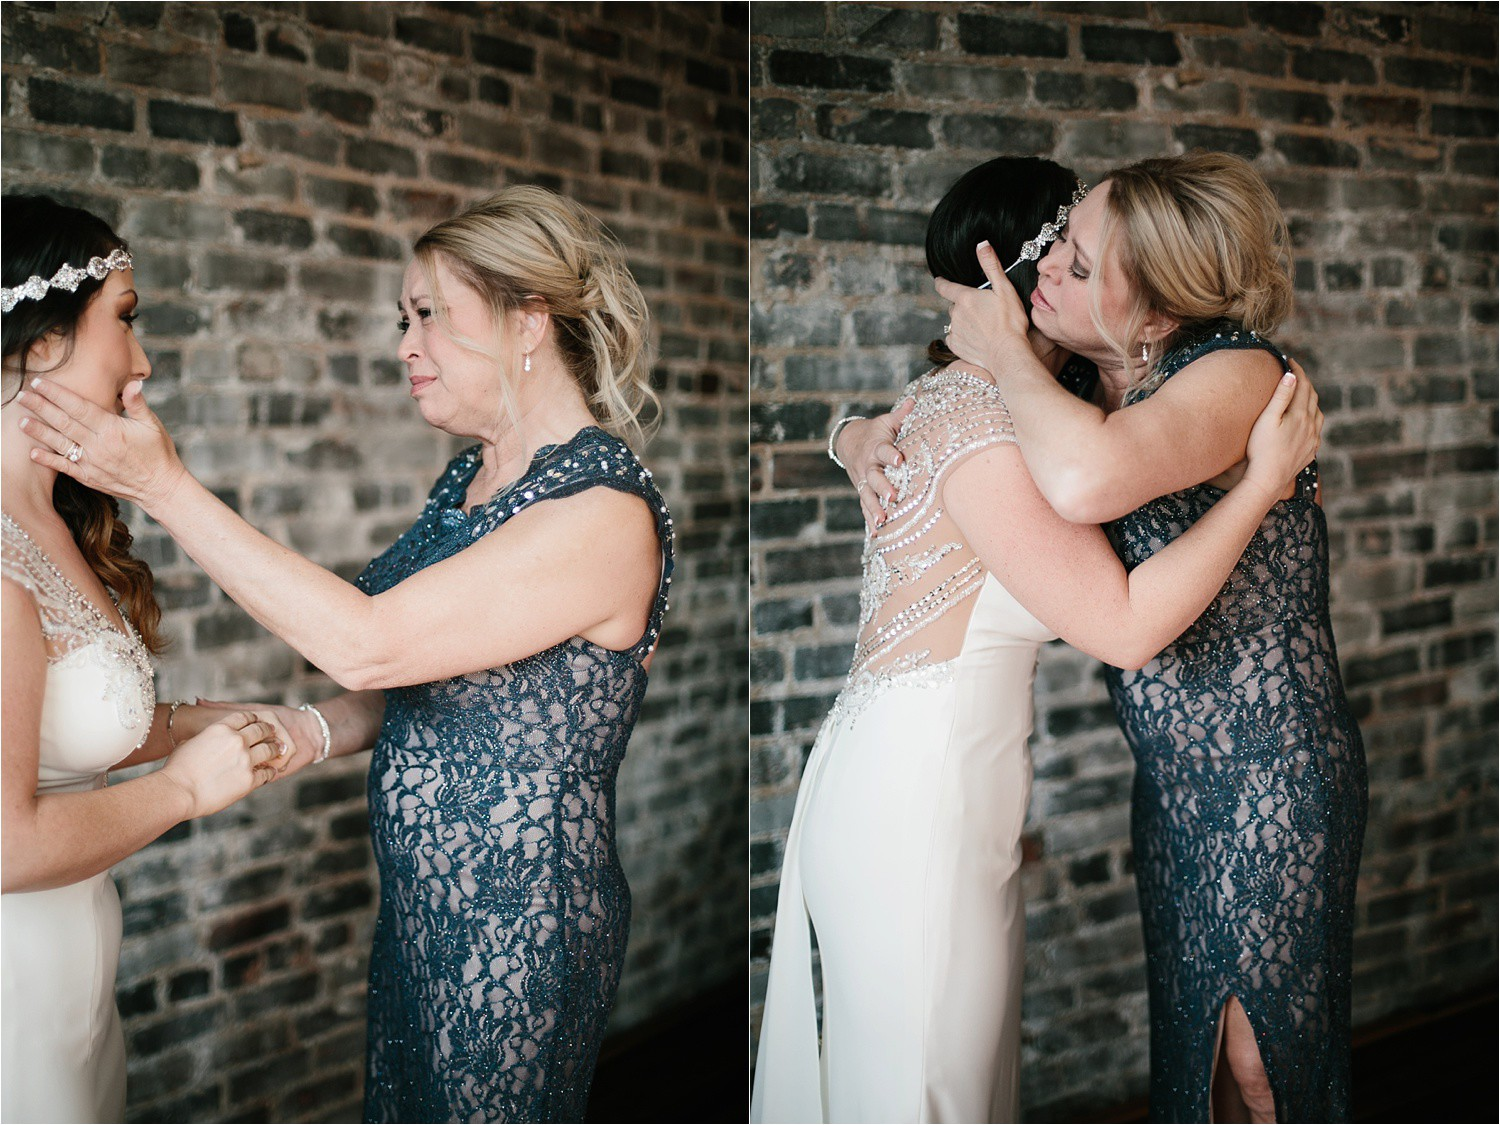 whittney-drew-__-an-intimate-wine-and-navy-wedding-in-an-industrial-venue-at-loft-123-in-paris-tx-by-north-texas-wedding-photographer-rachel-meagan-photography-_-019